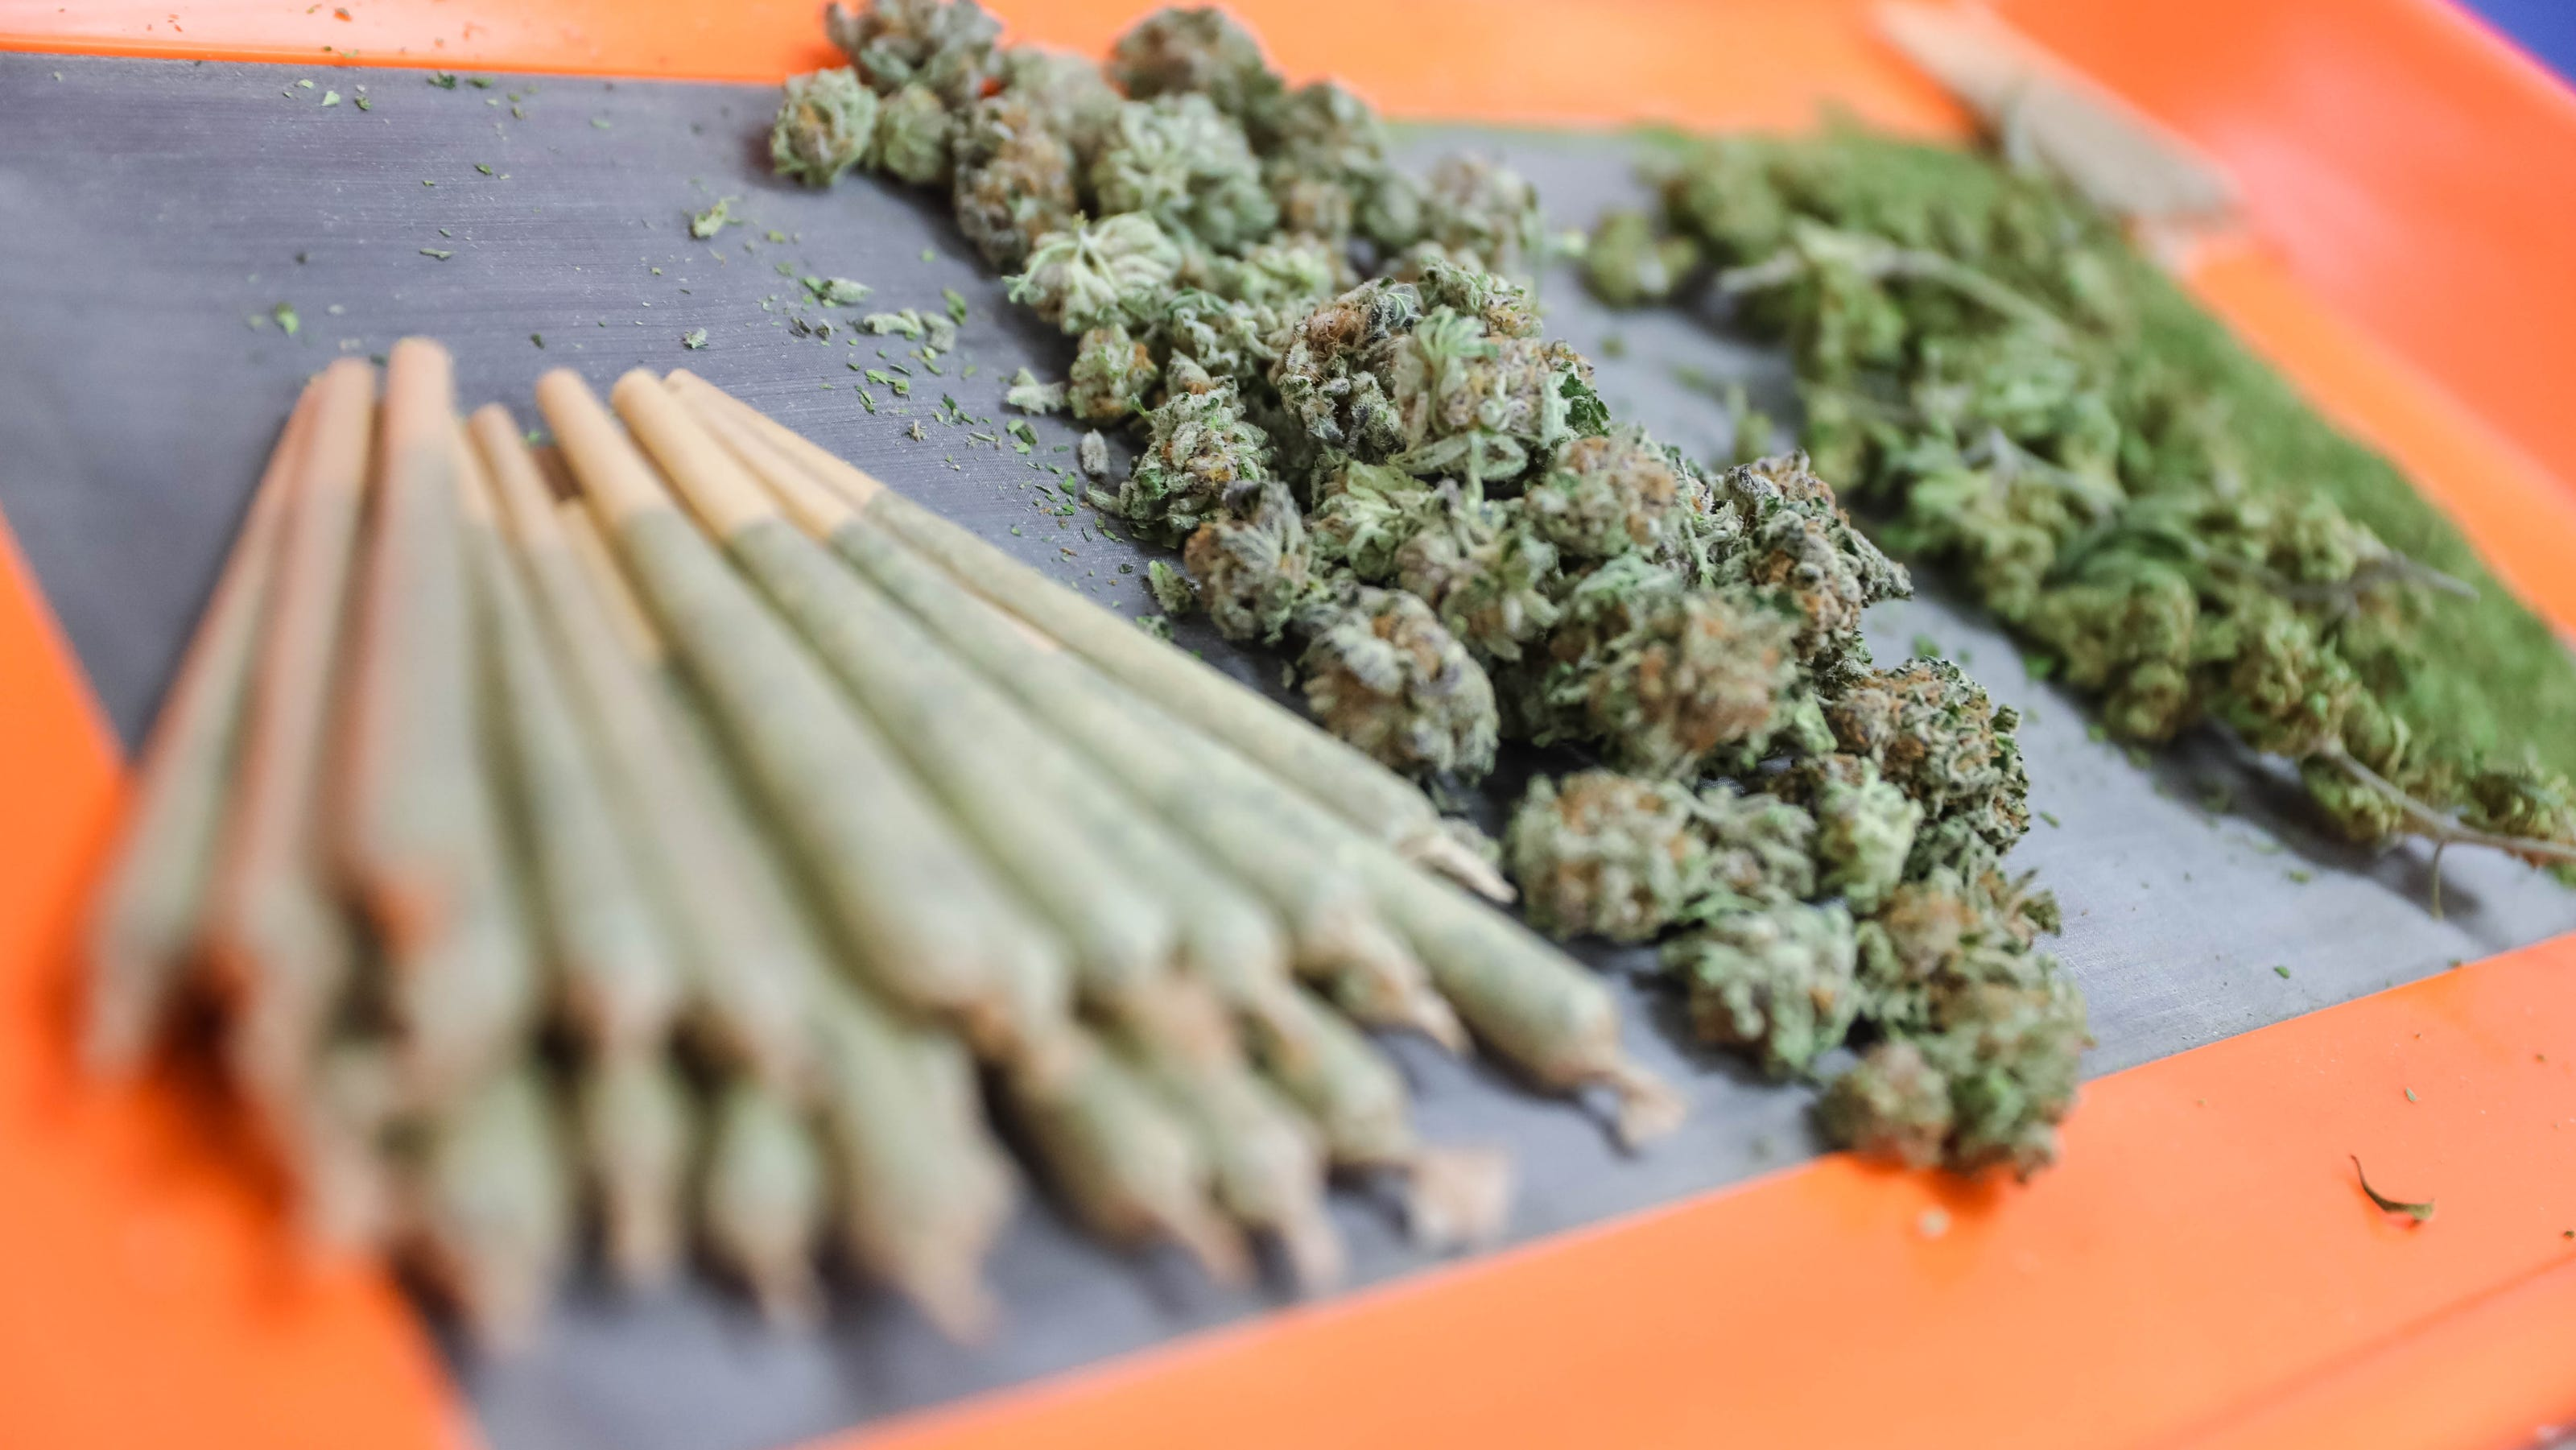 NM lawmakers will again weigh legal cannabis in 2021; here's what needs to be worked out